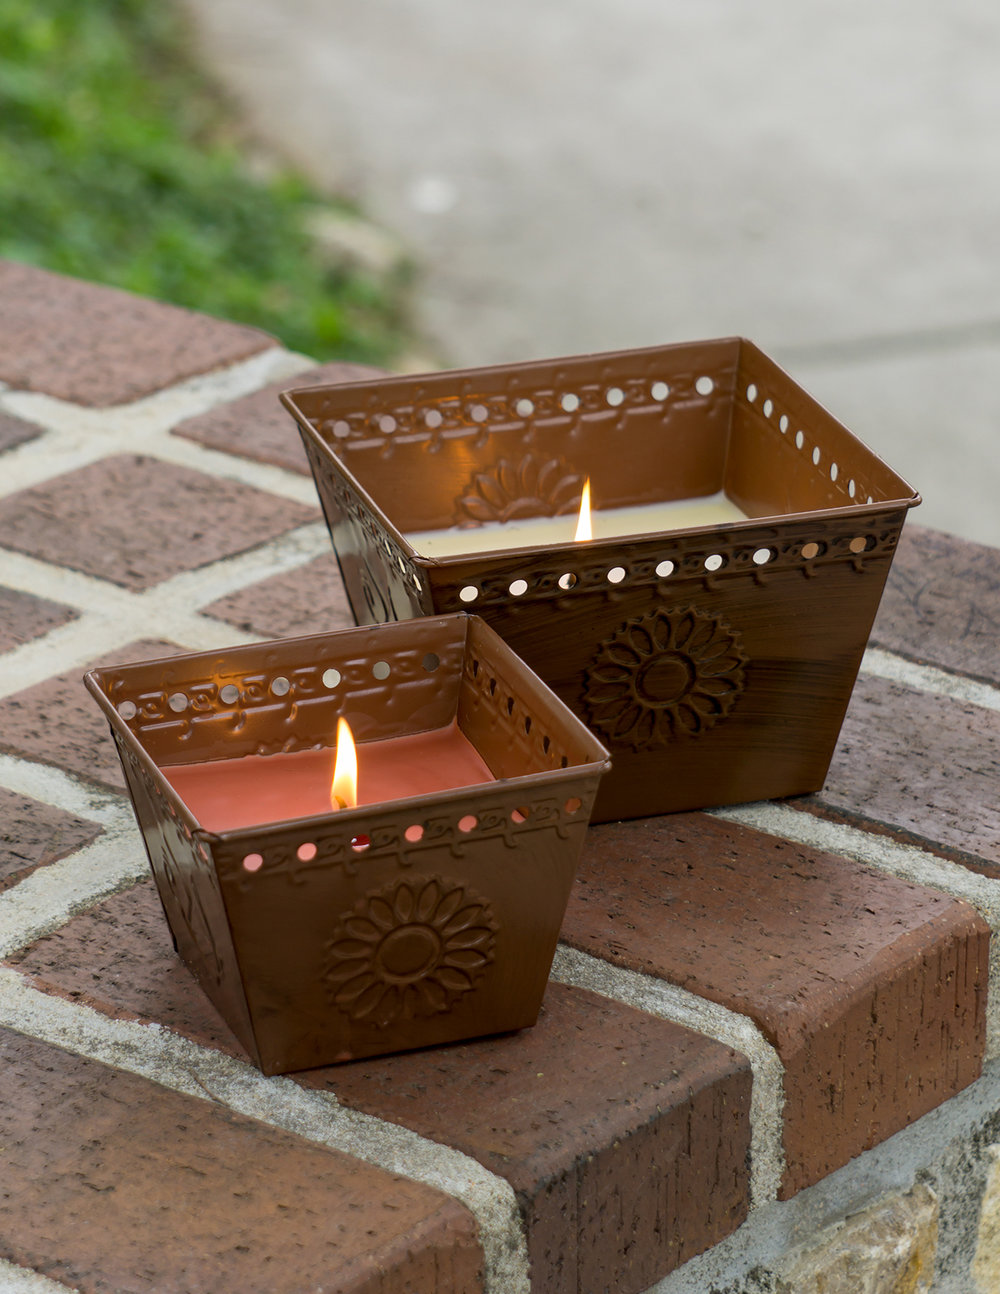 2018 Tuscany Candle Outdoor & Citronella - Deadline for orders/commitments is Sept. 26, 2017First available ship date is Feb. 10, 2018.